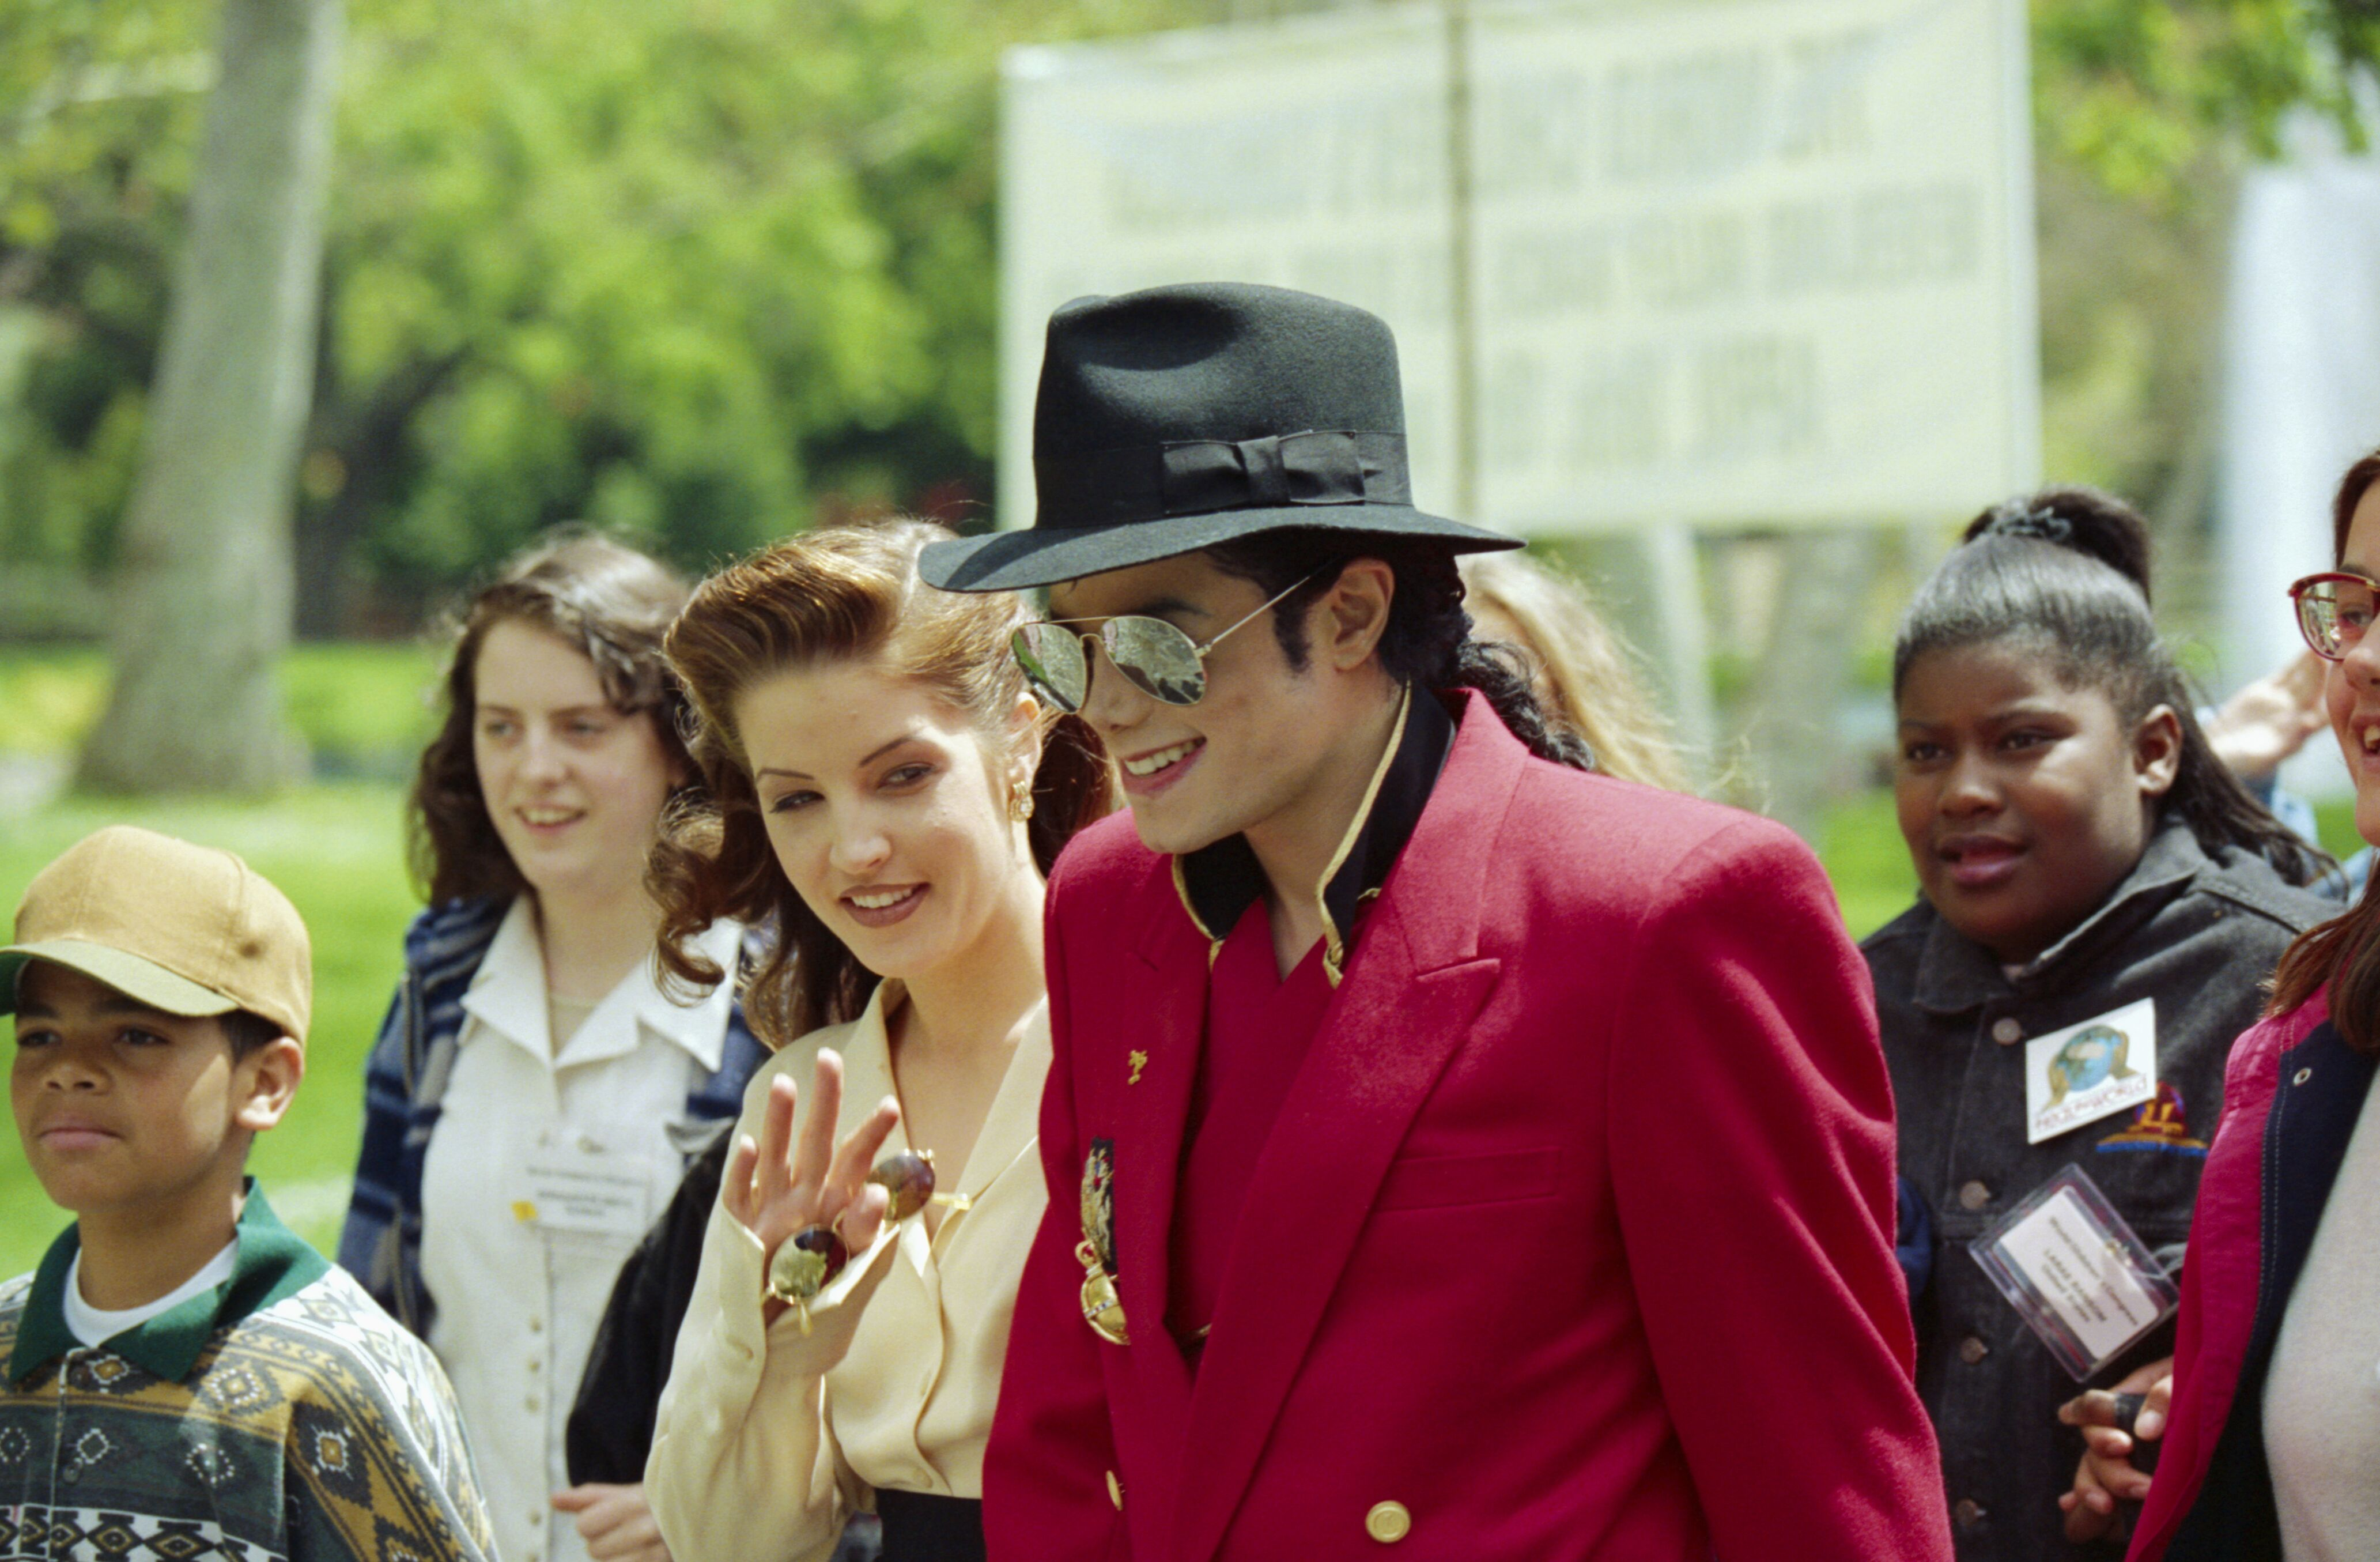 Michael Jackson and Lisa Marie Presley in 1995 | Source: Gerry Images